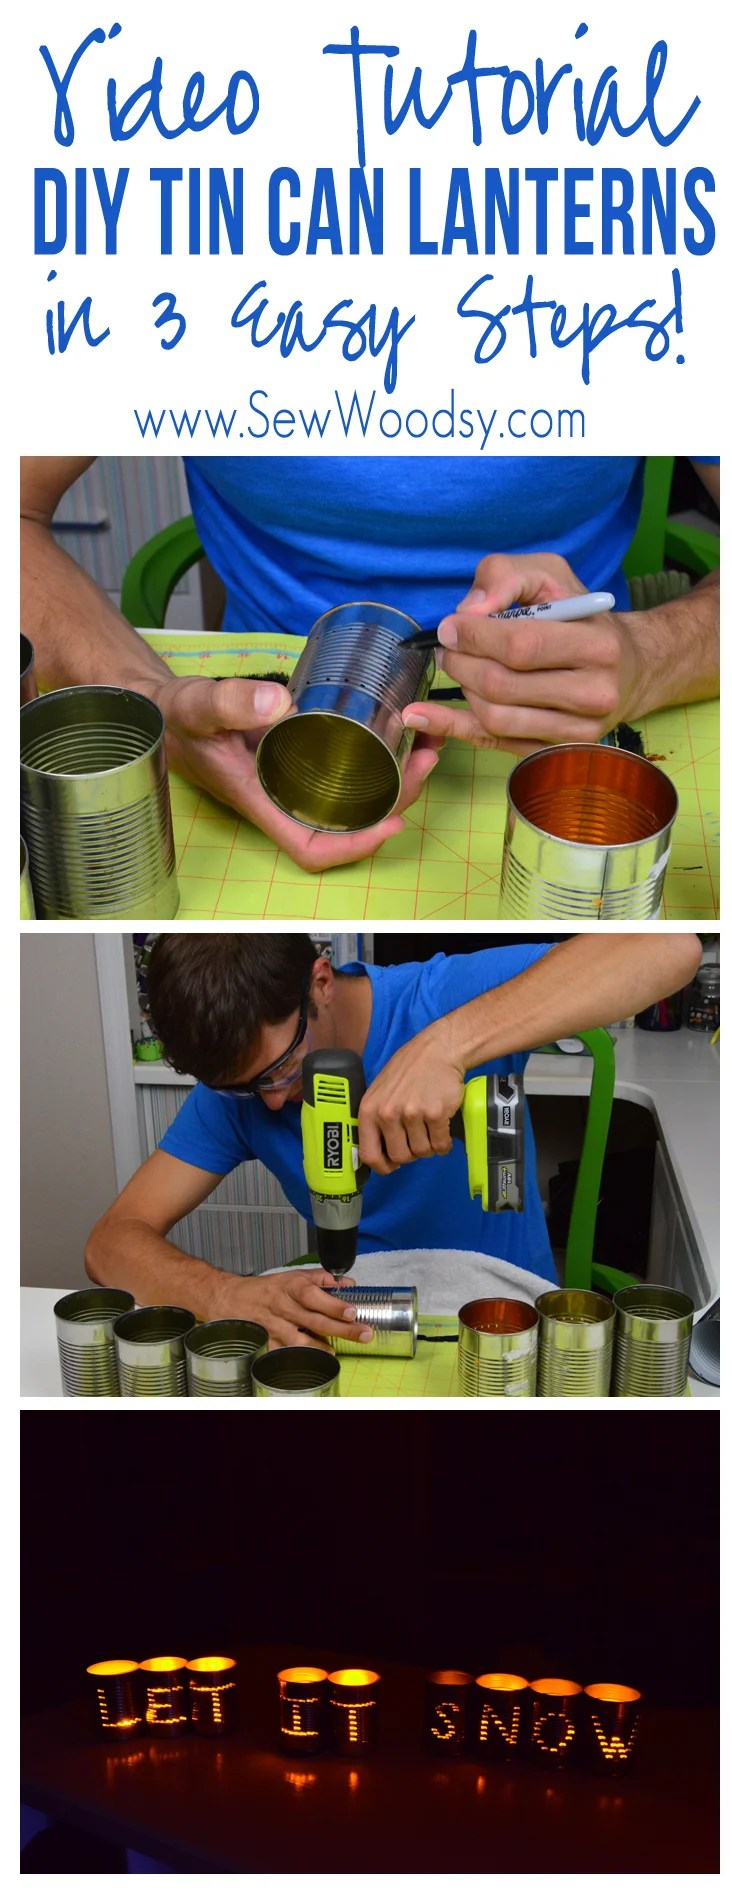 Video Tutorial -- DIY Tin Can Lanterns for @aptsforrent from SewWoodsy.com